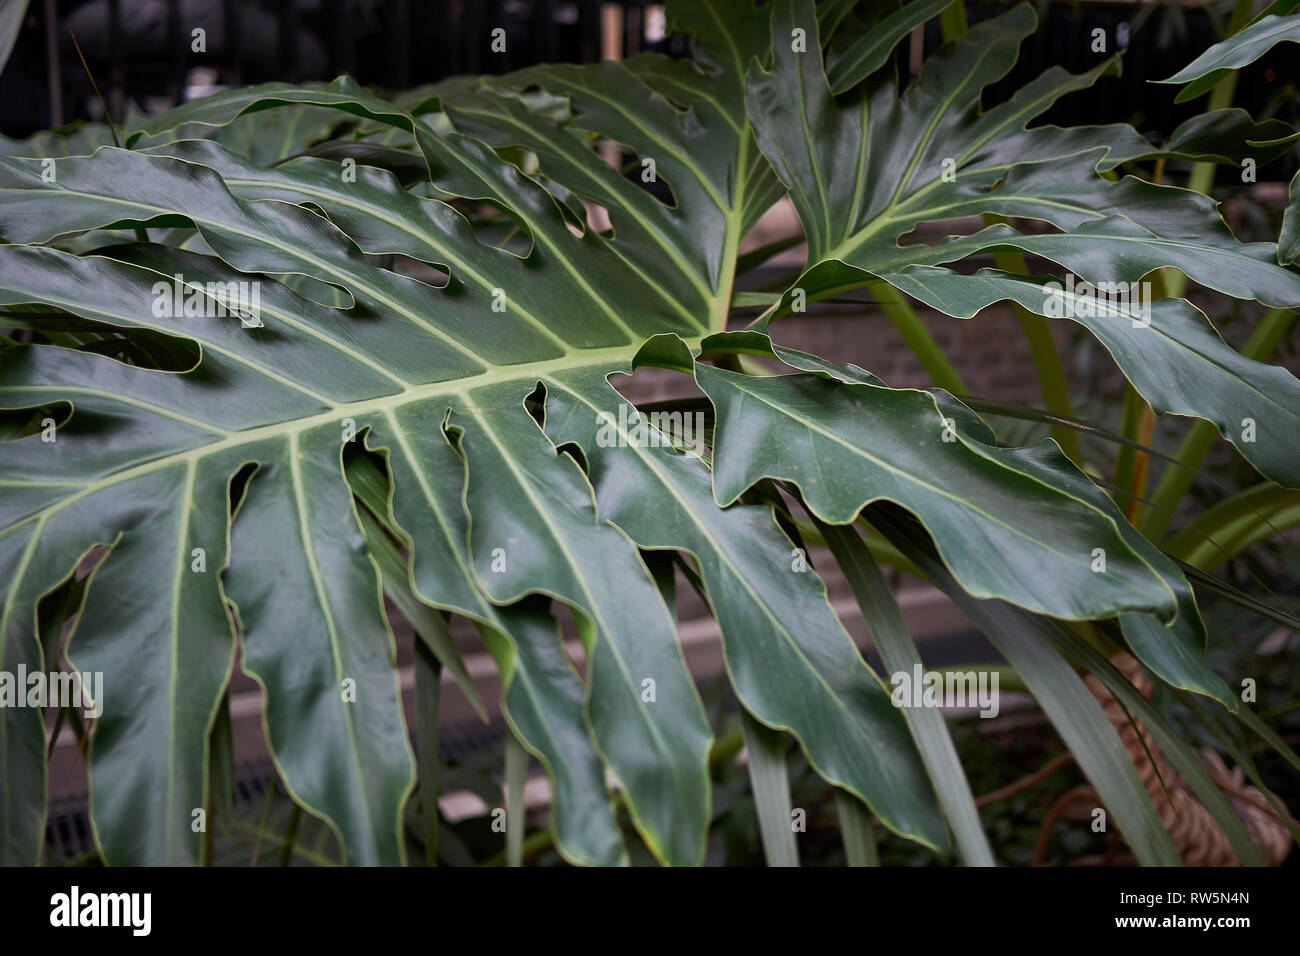 Horsehead Philodendron High Resolution Stock Photography And Images Alamy